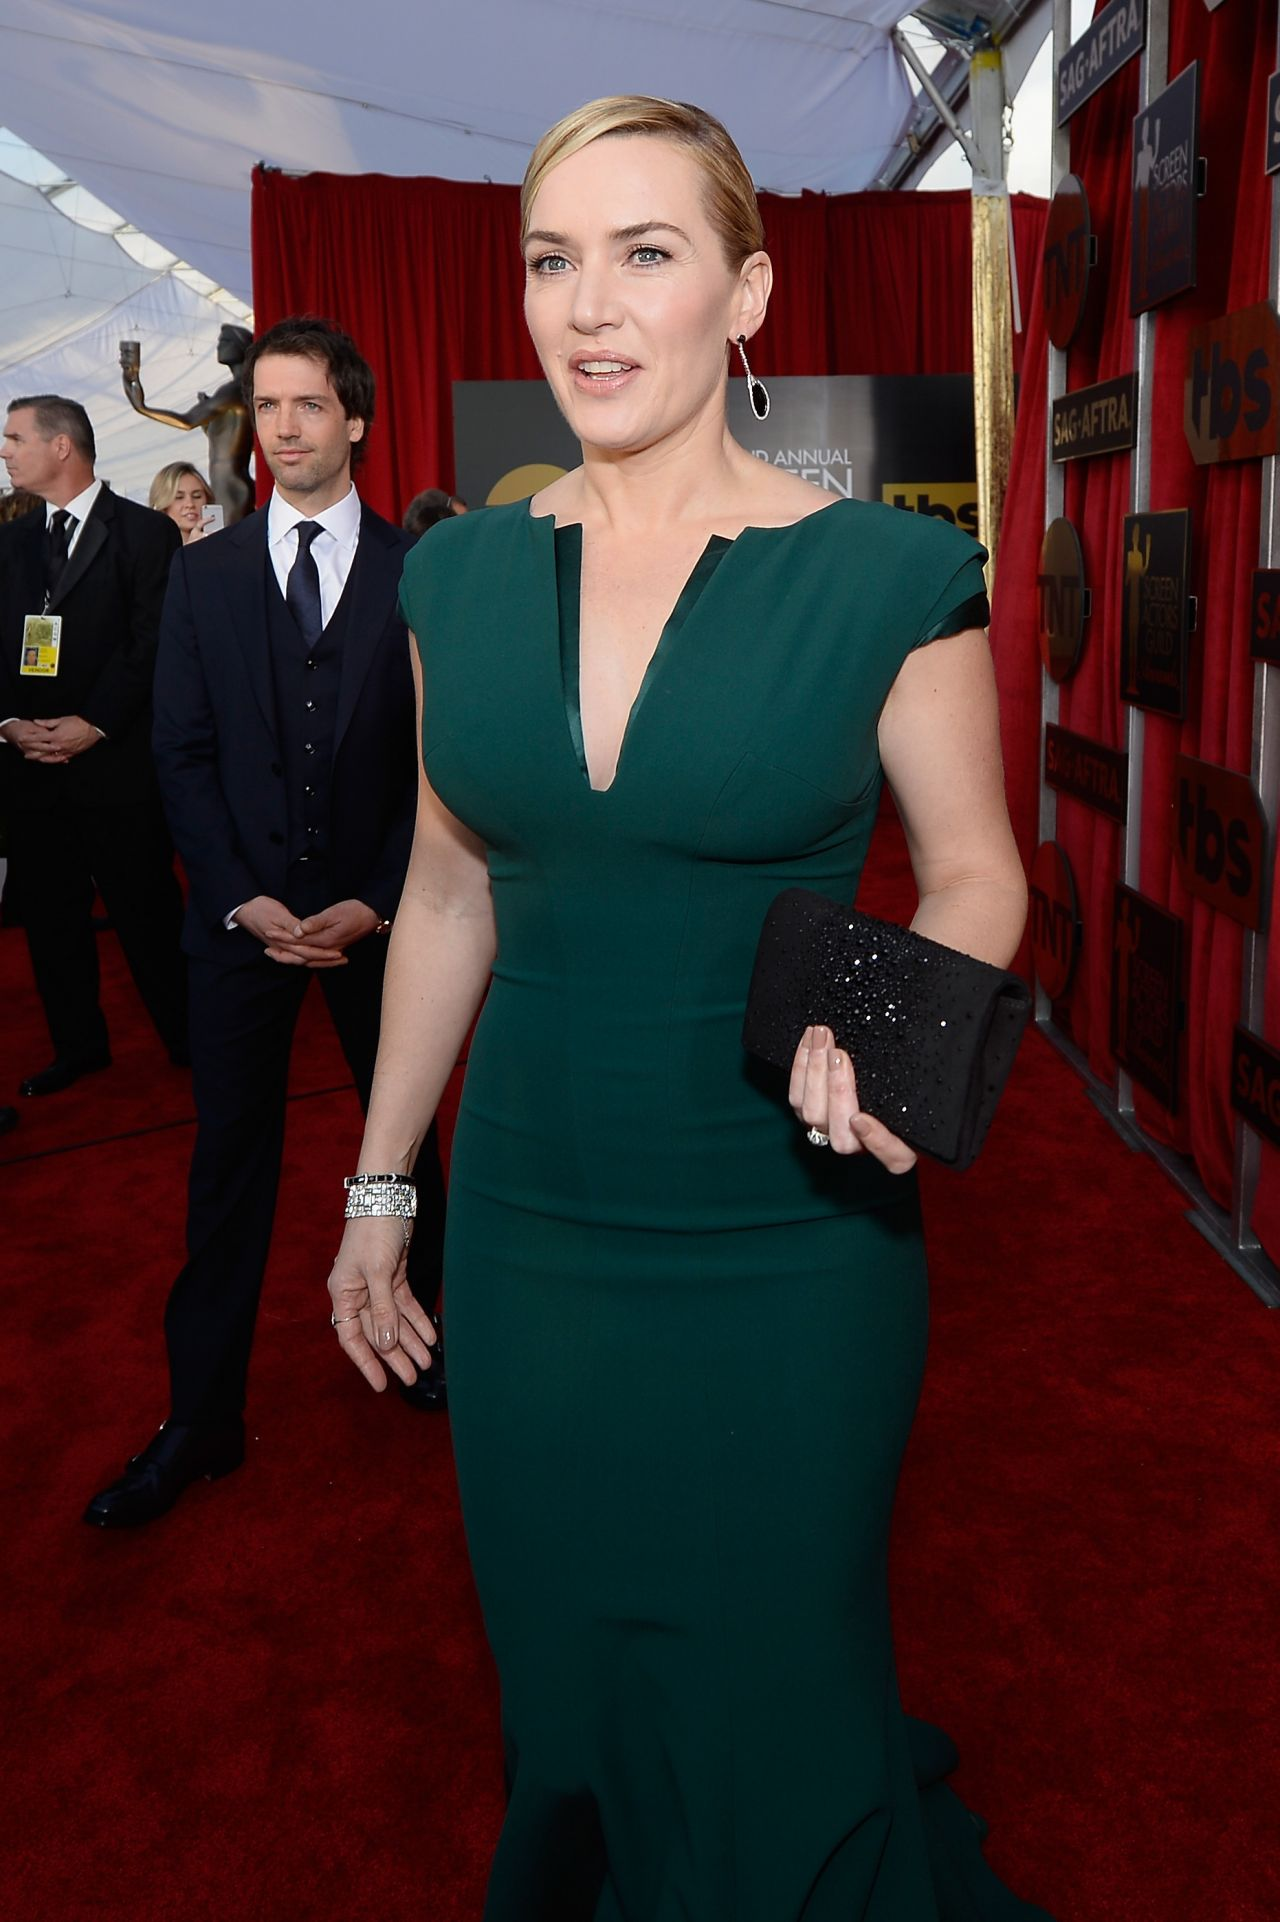 kate-winslet-sag-awards-2016-at-shrine-auditorium-in-los-angeles-1